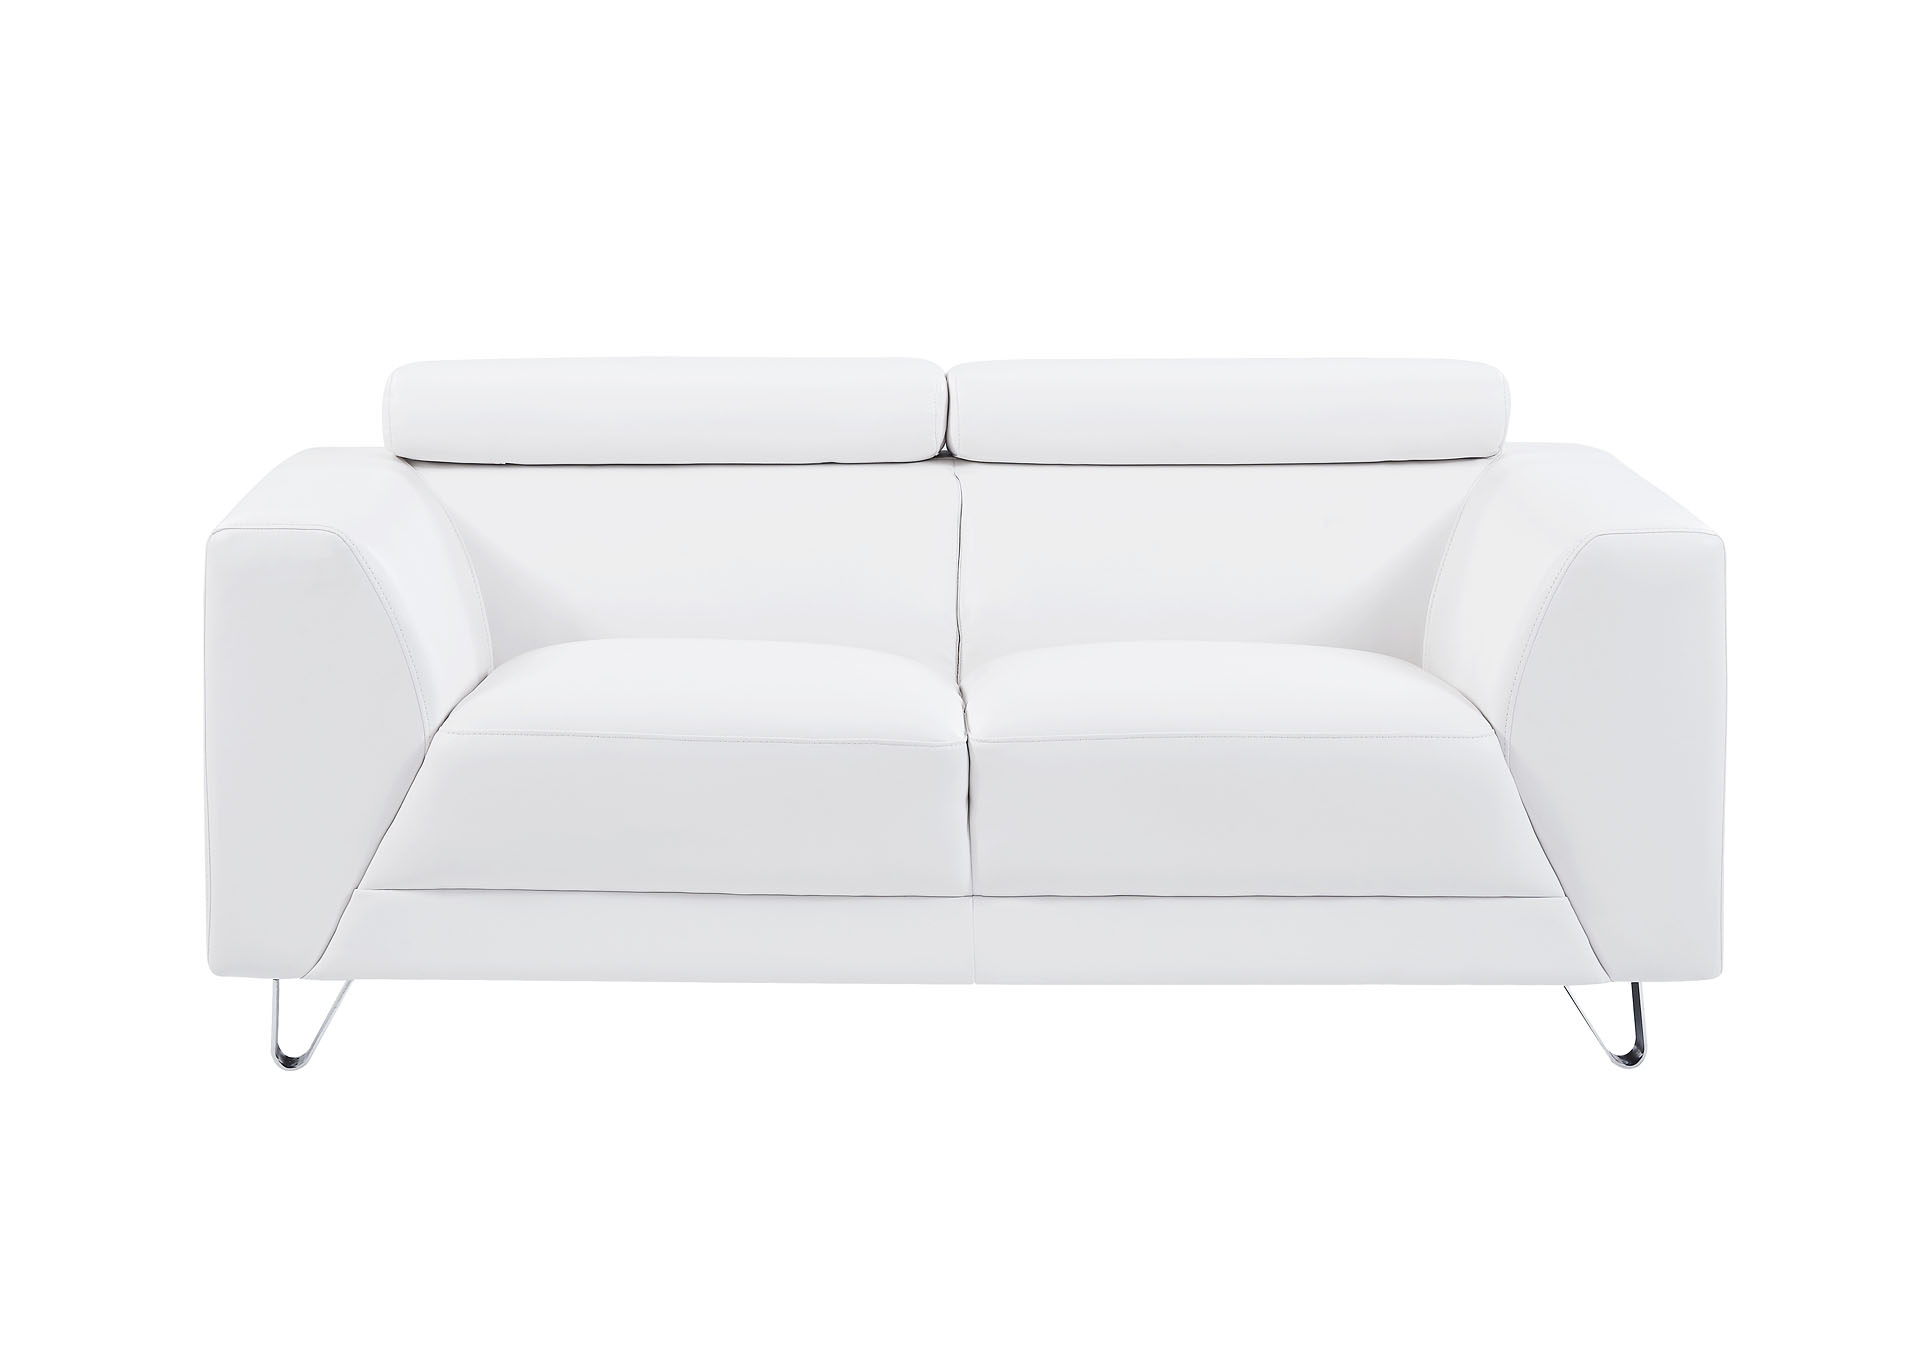 Pluto White Loveseat,Global Furniture USA